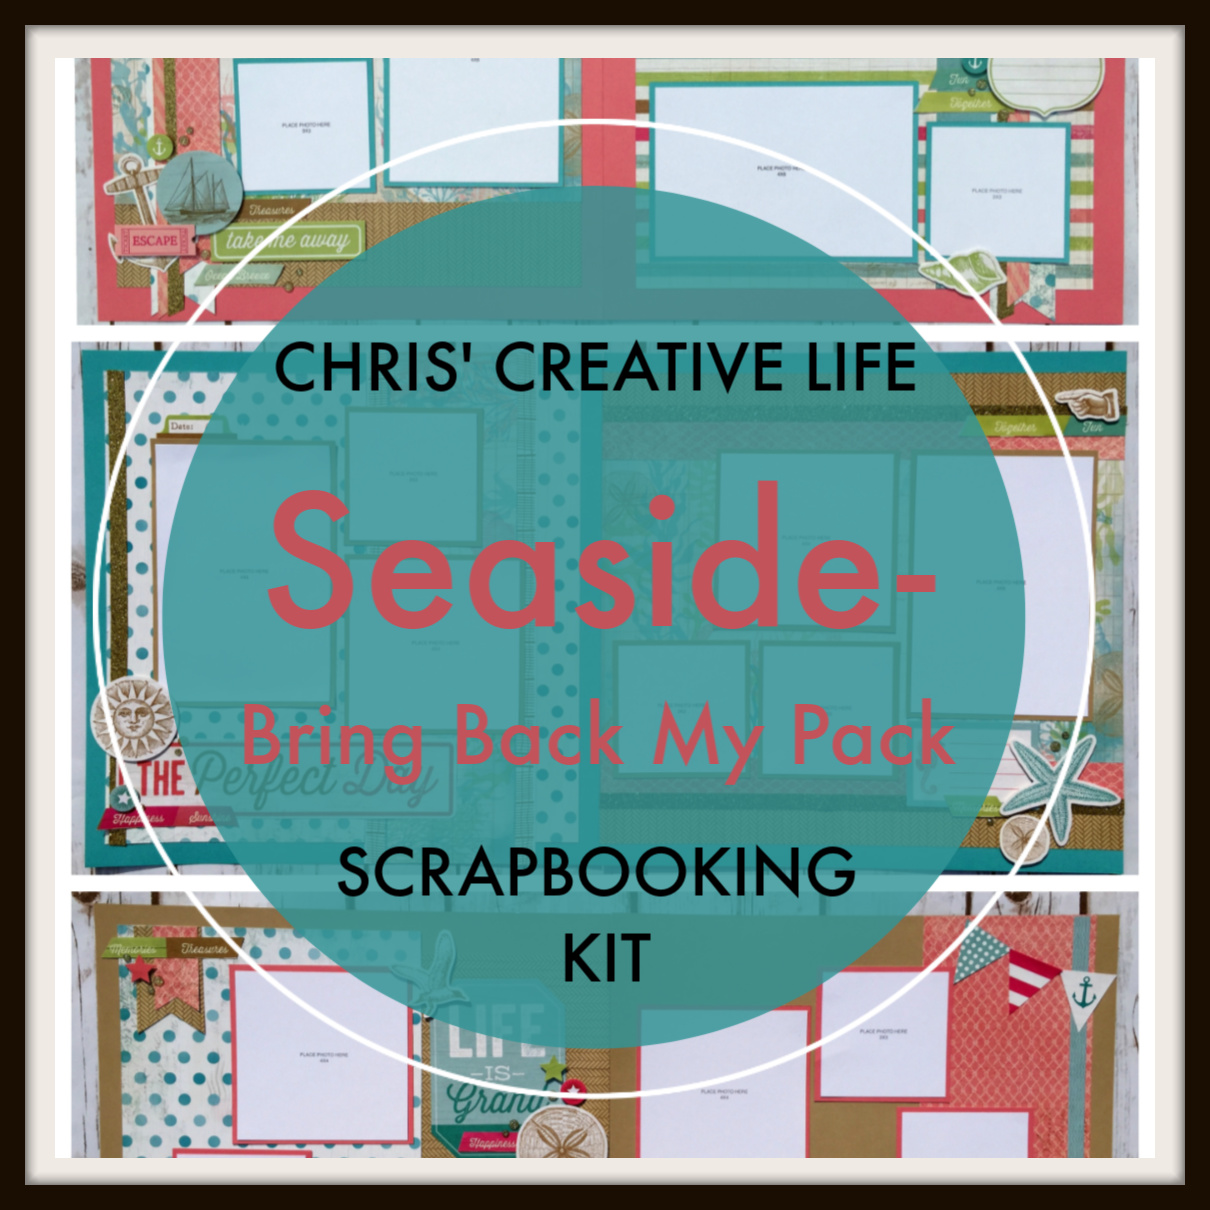 Seaside-Bring Back My Pack Scrapbooking Workshop